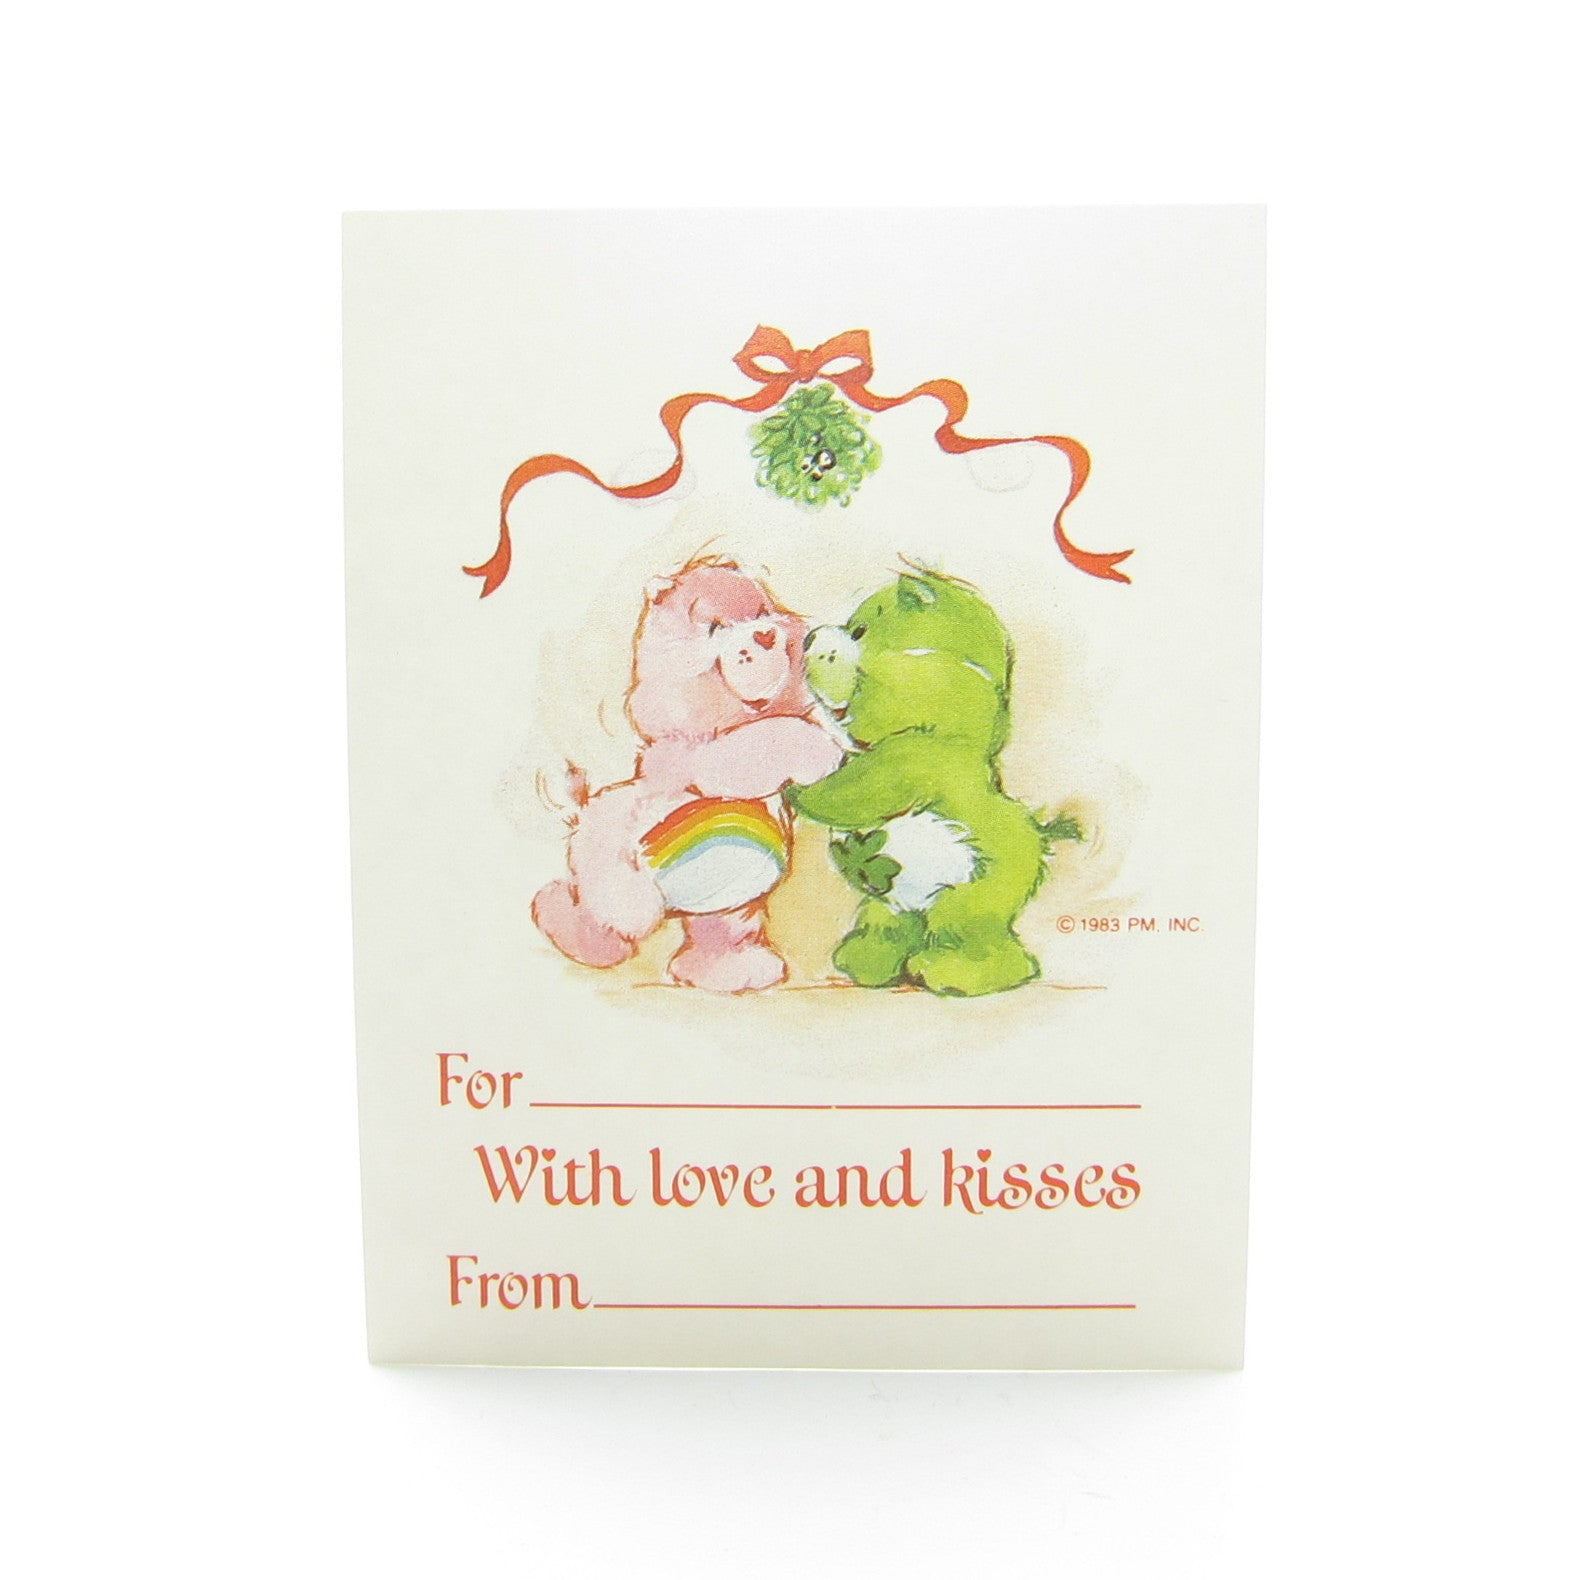 With Love and Kisses Care Bears Christmas gift tag with Cheer and Good Luck Bear